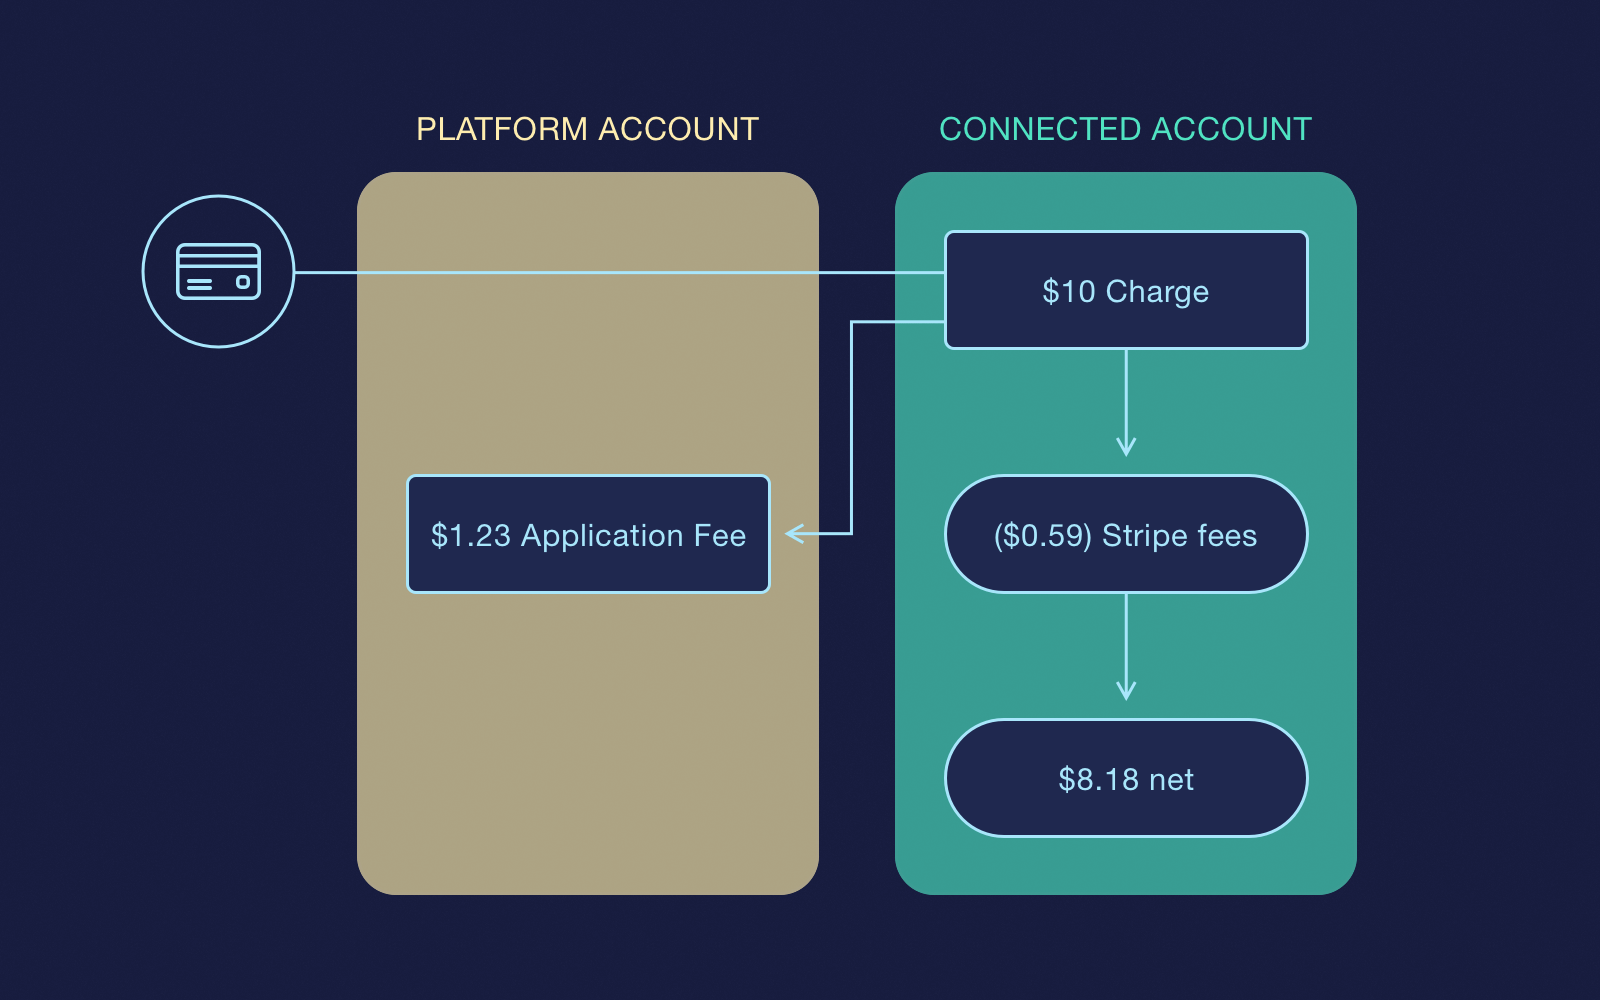 The direct charge scheme on Stripe